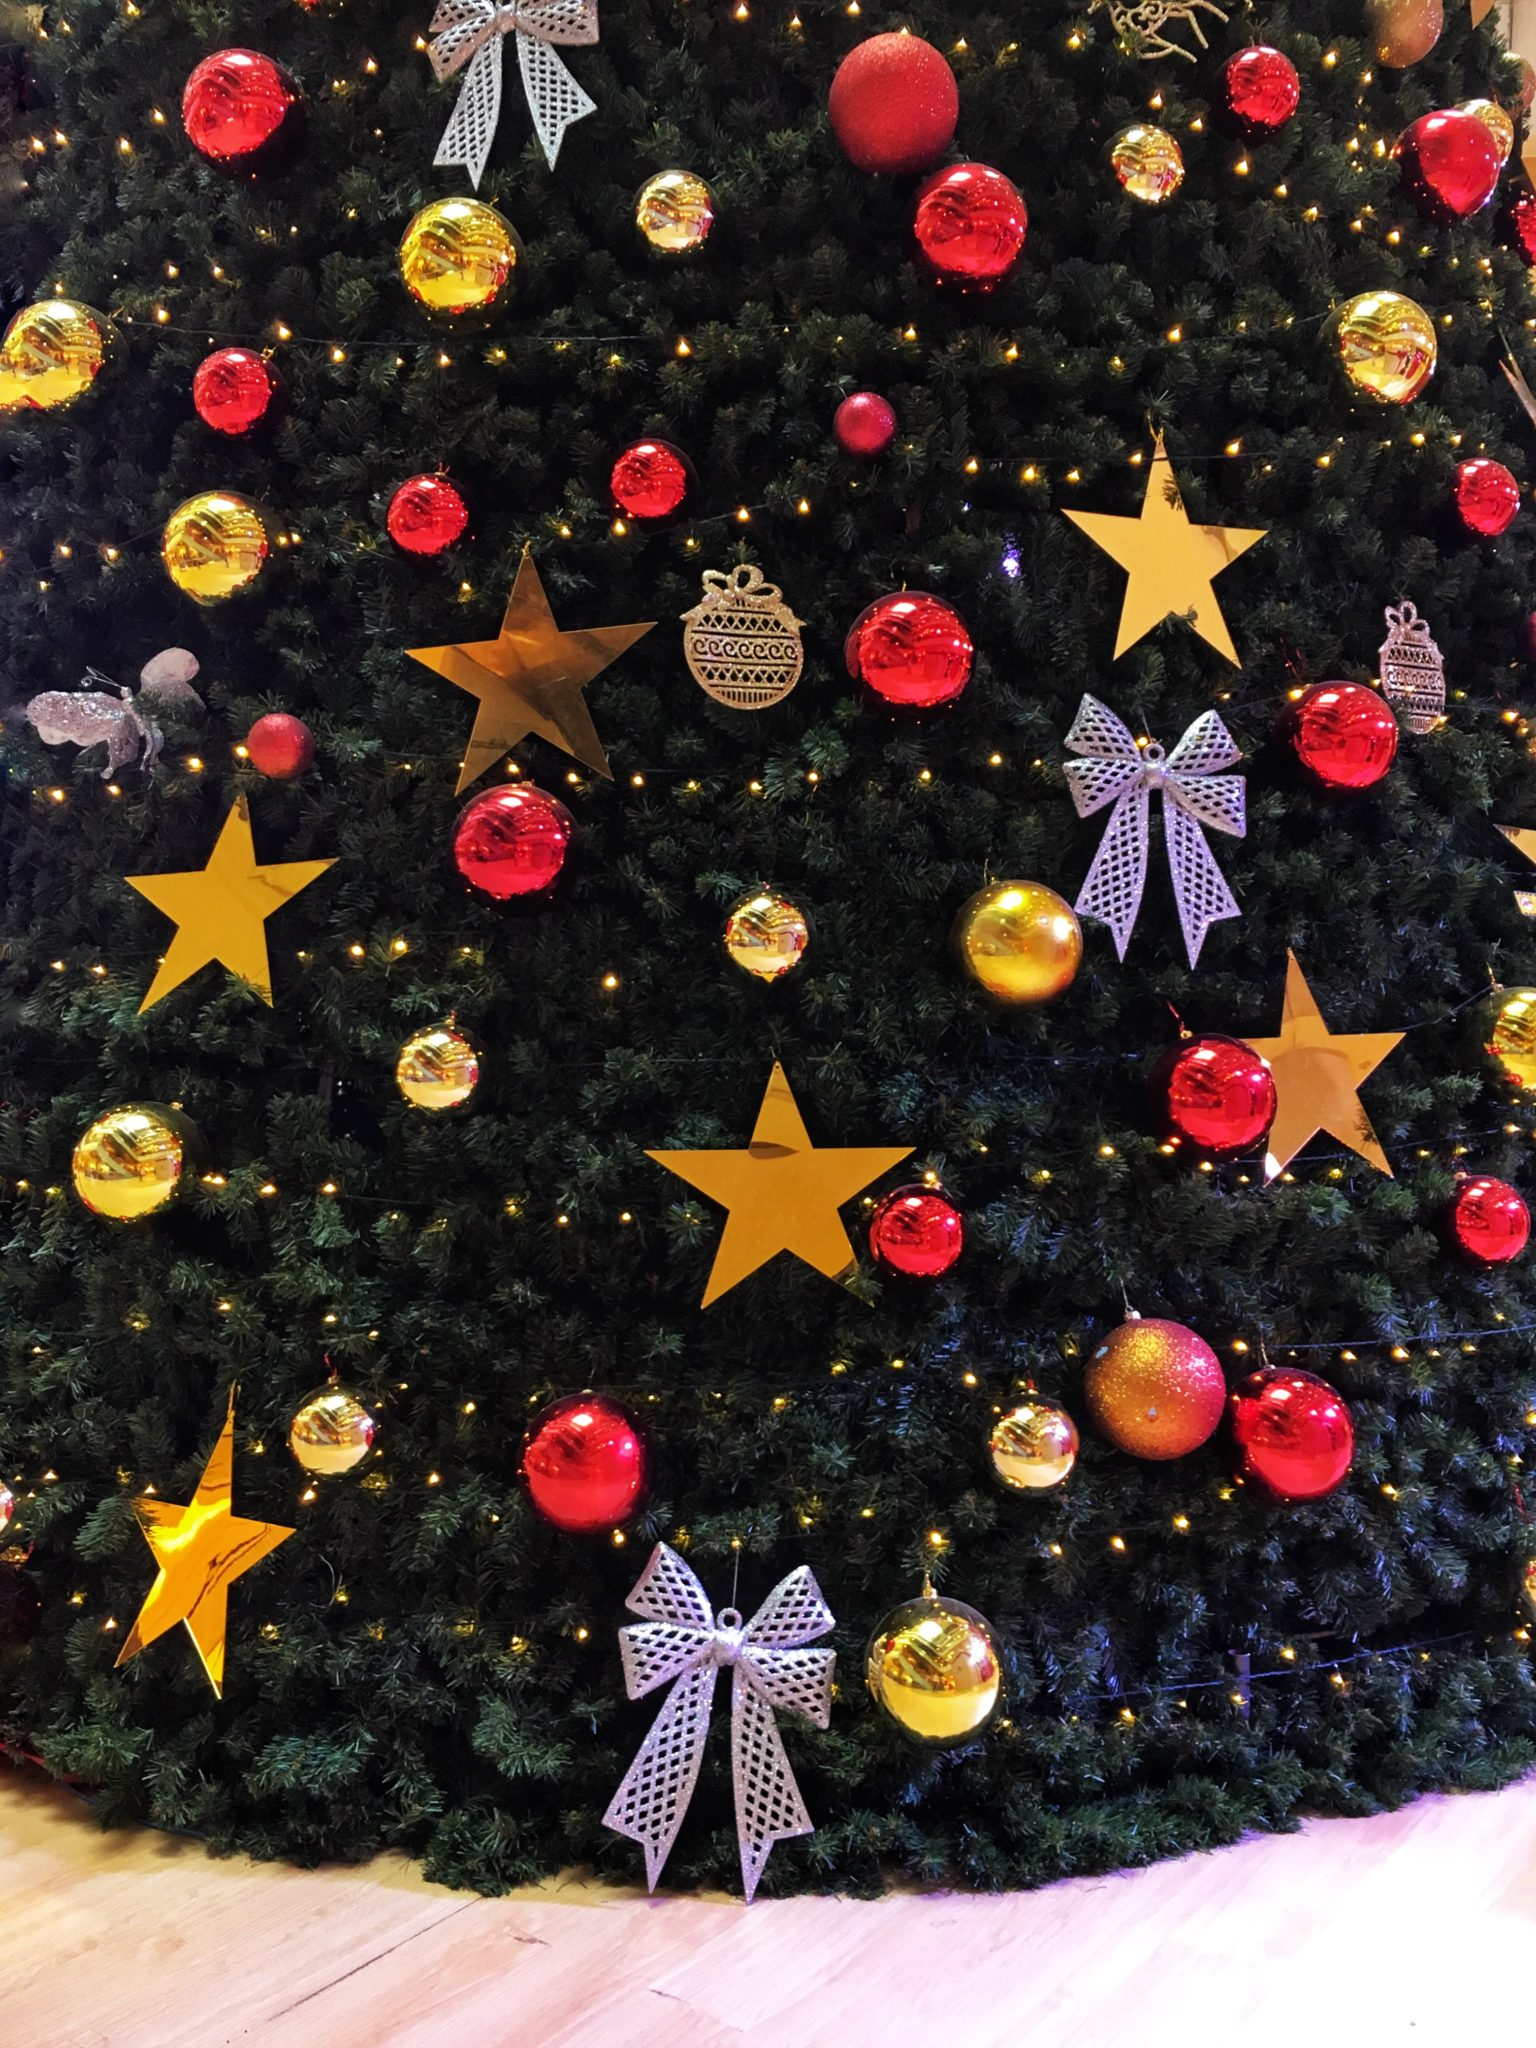 Colourful Christmas Decor by @simranvues